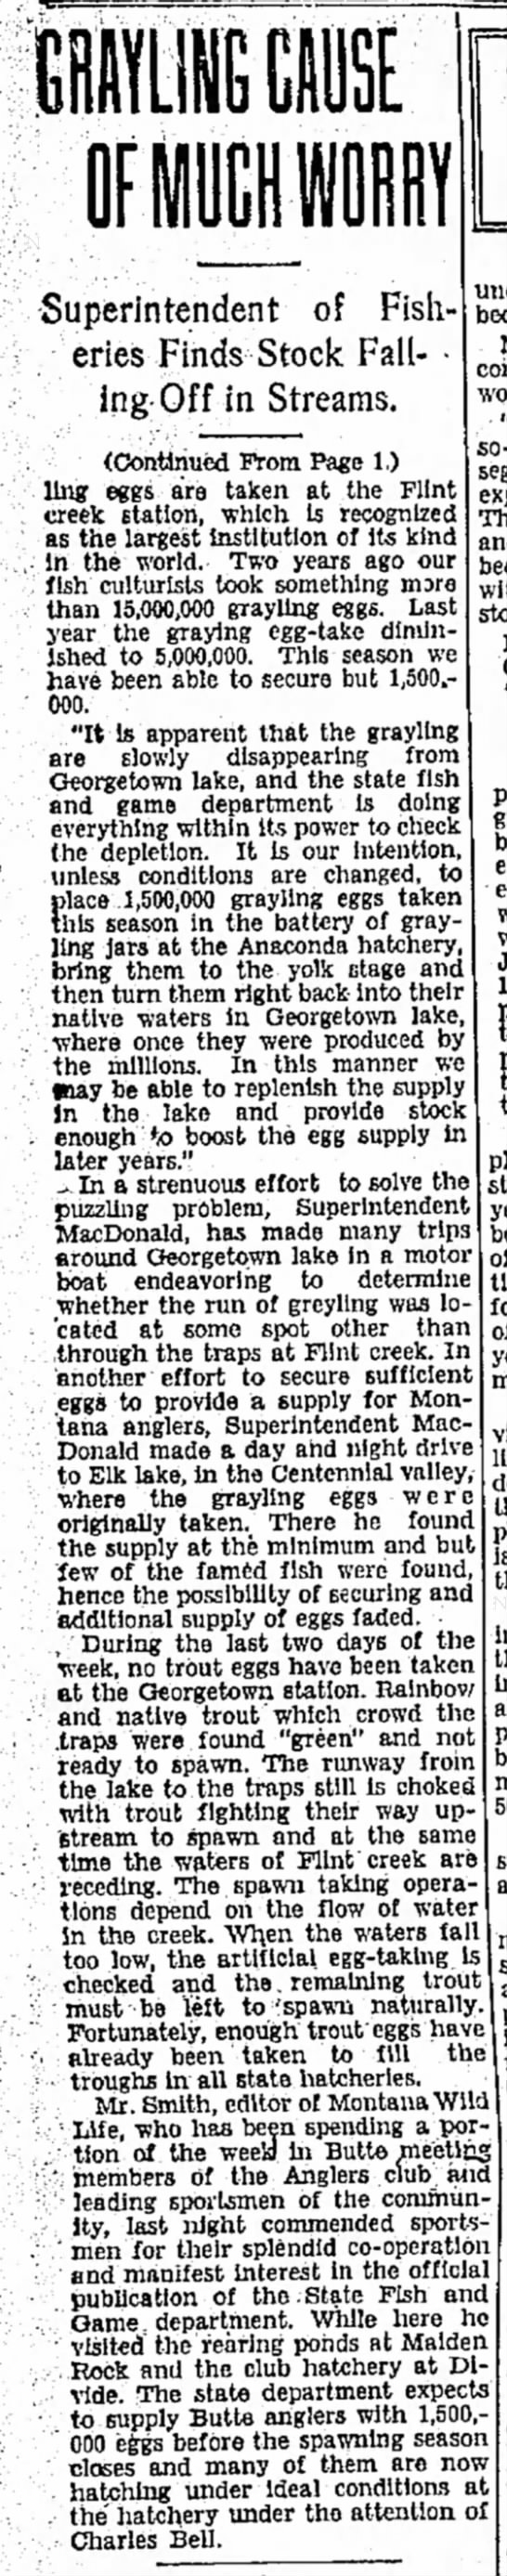 1931 June 14 grayling worry cont. - Superintendent of Fisheries Fisheries Finds...